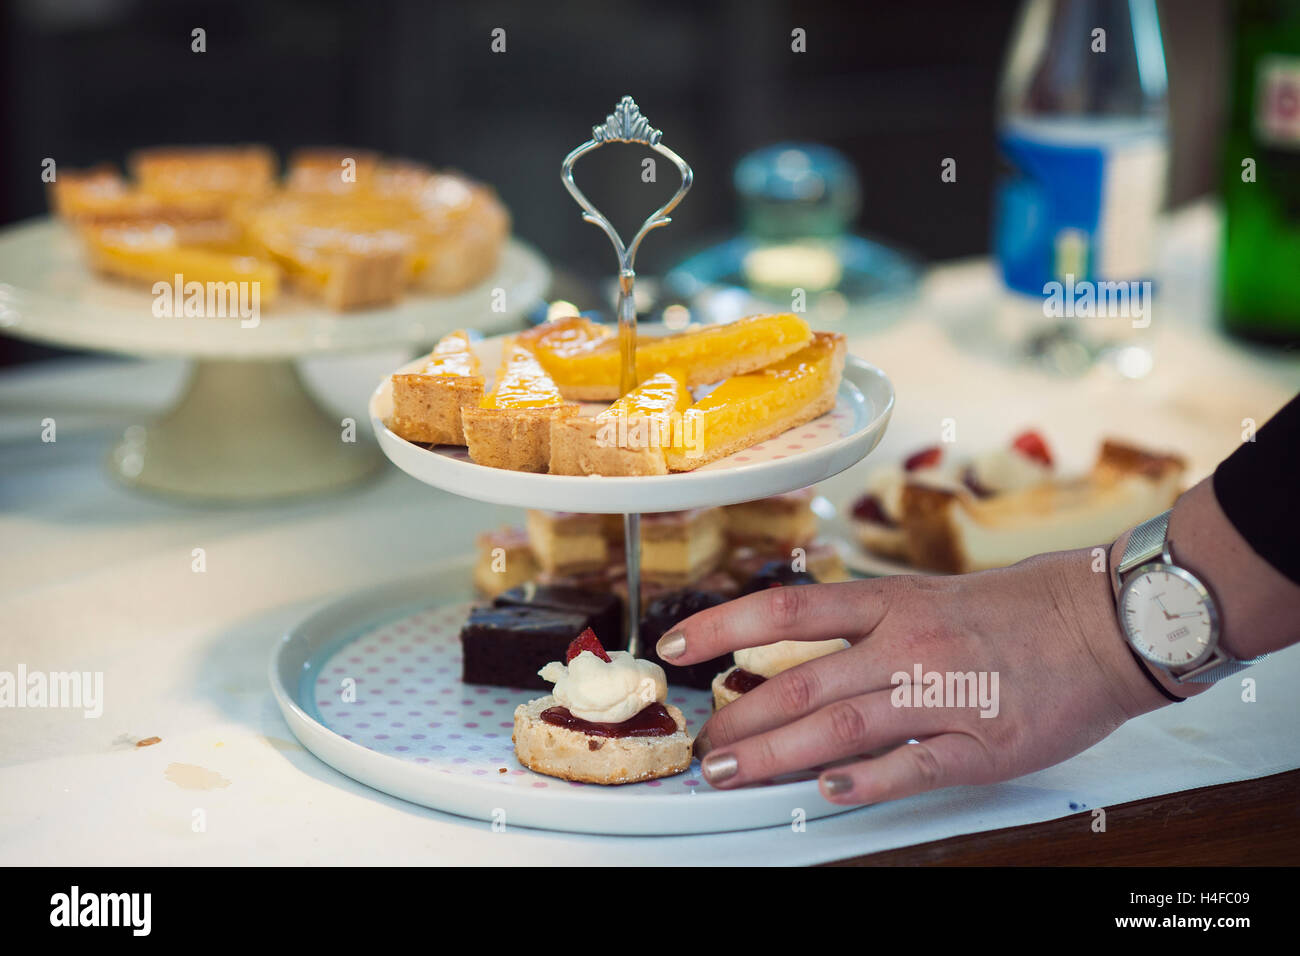 delicious looking cakes on a two tier stand with a person's hand about to take one - Stock Image